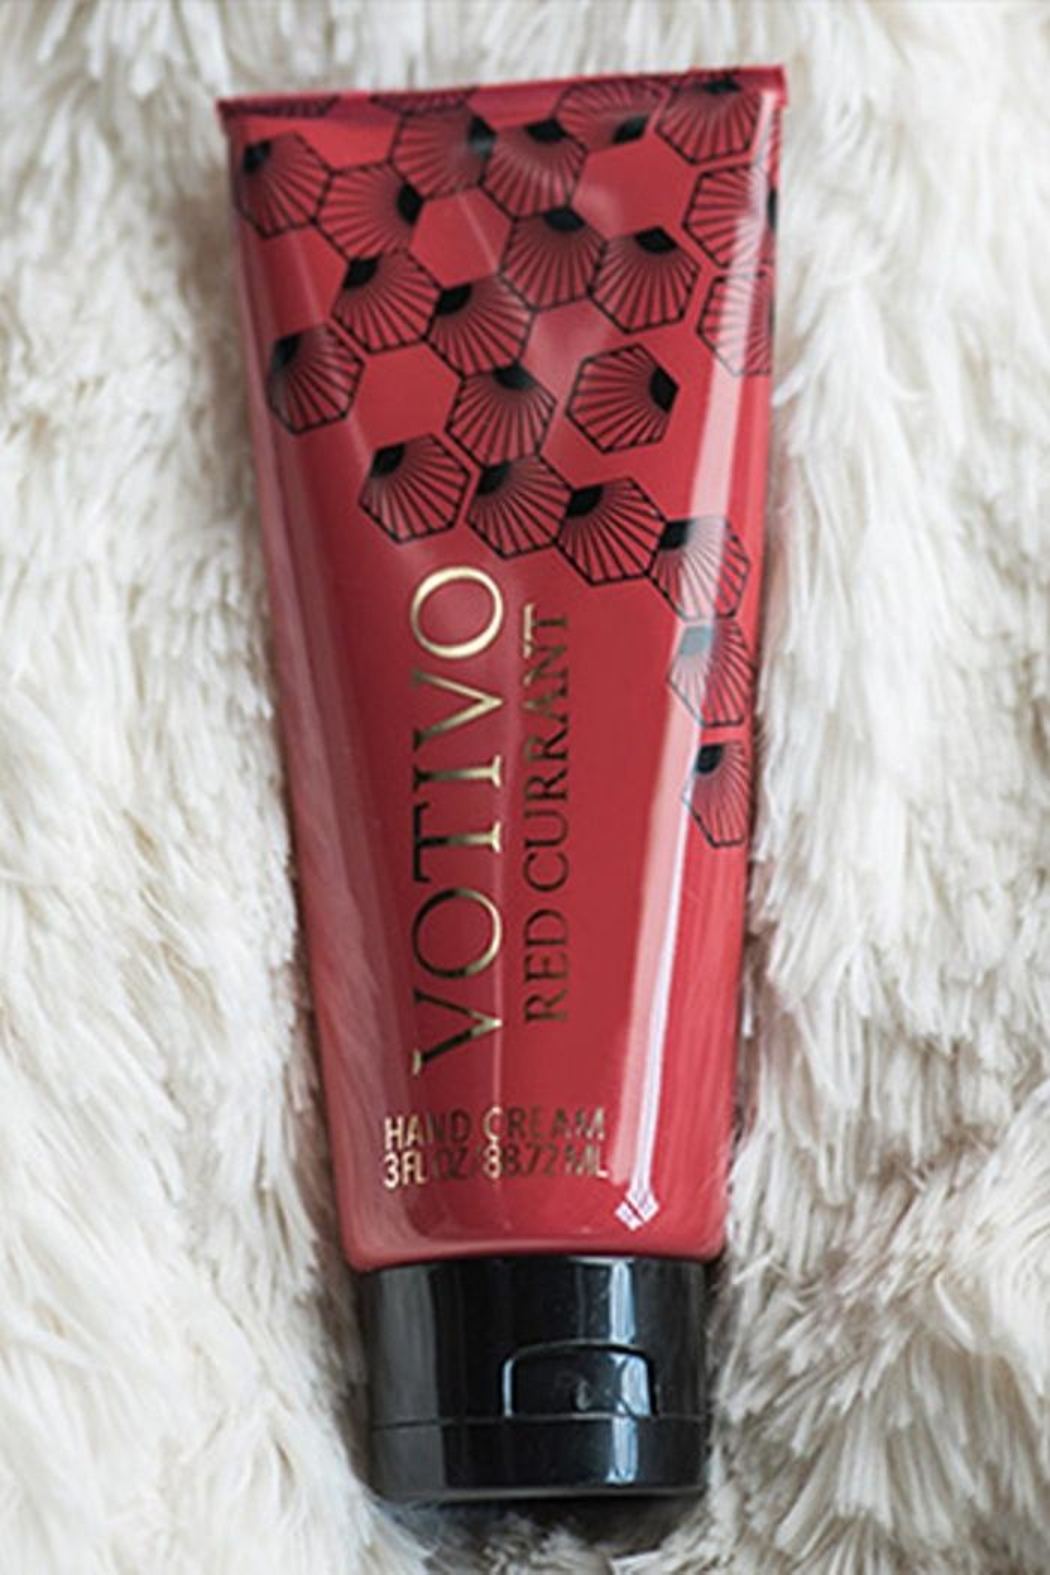 Votivo Luxurious Hand Cream - Main Image